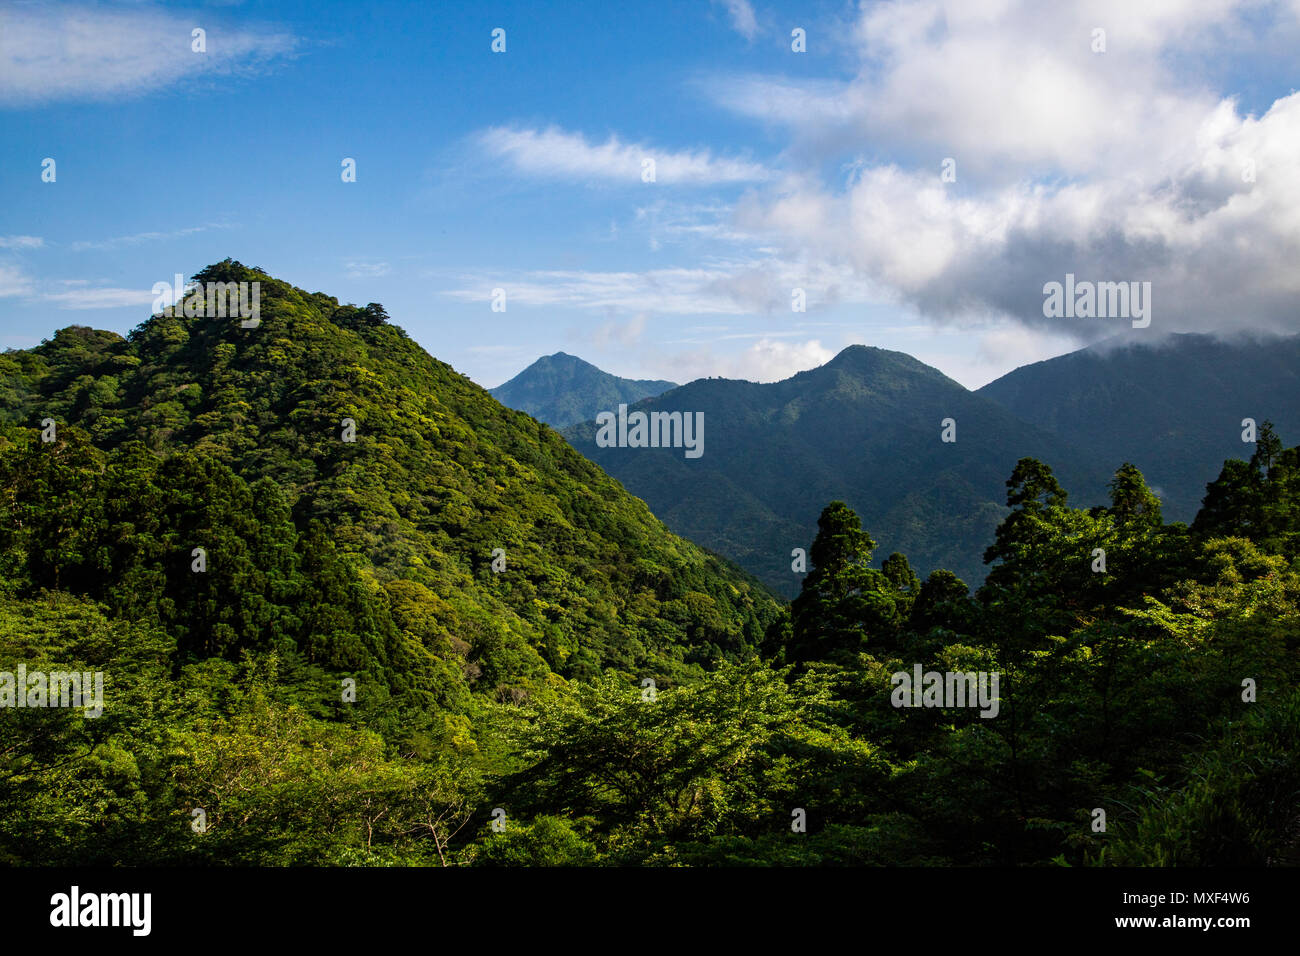 Yakushima is a subtropical island south of Kyushu covered by huge cedar forests that contains some of Japan's oldest living trees some of which are th - Stock Image